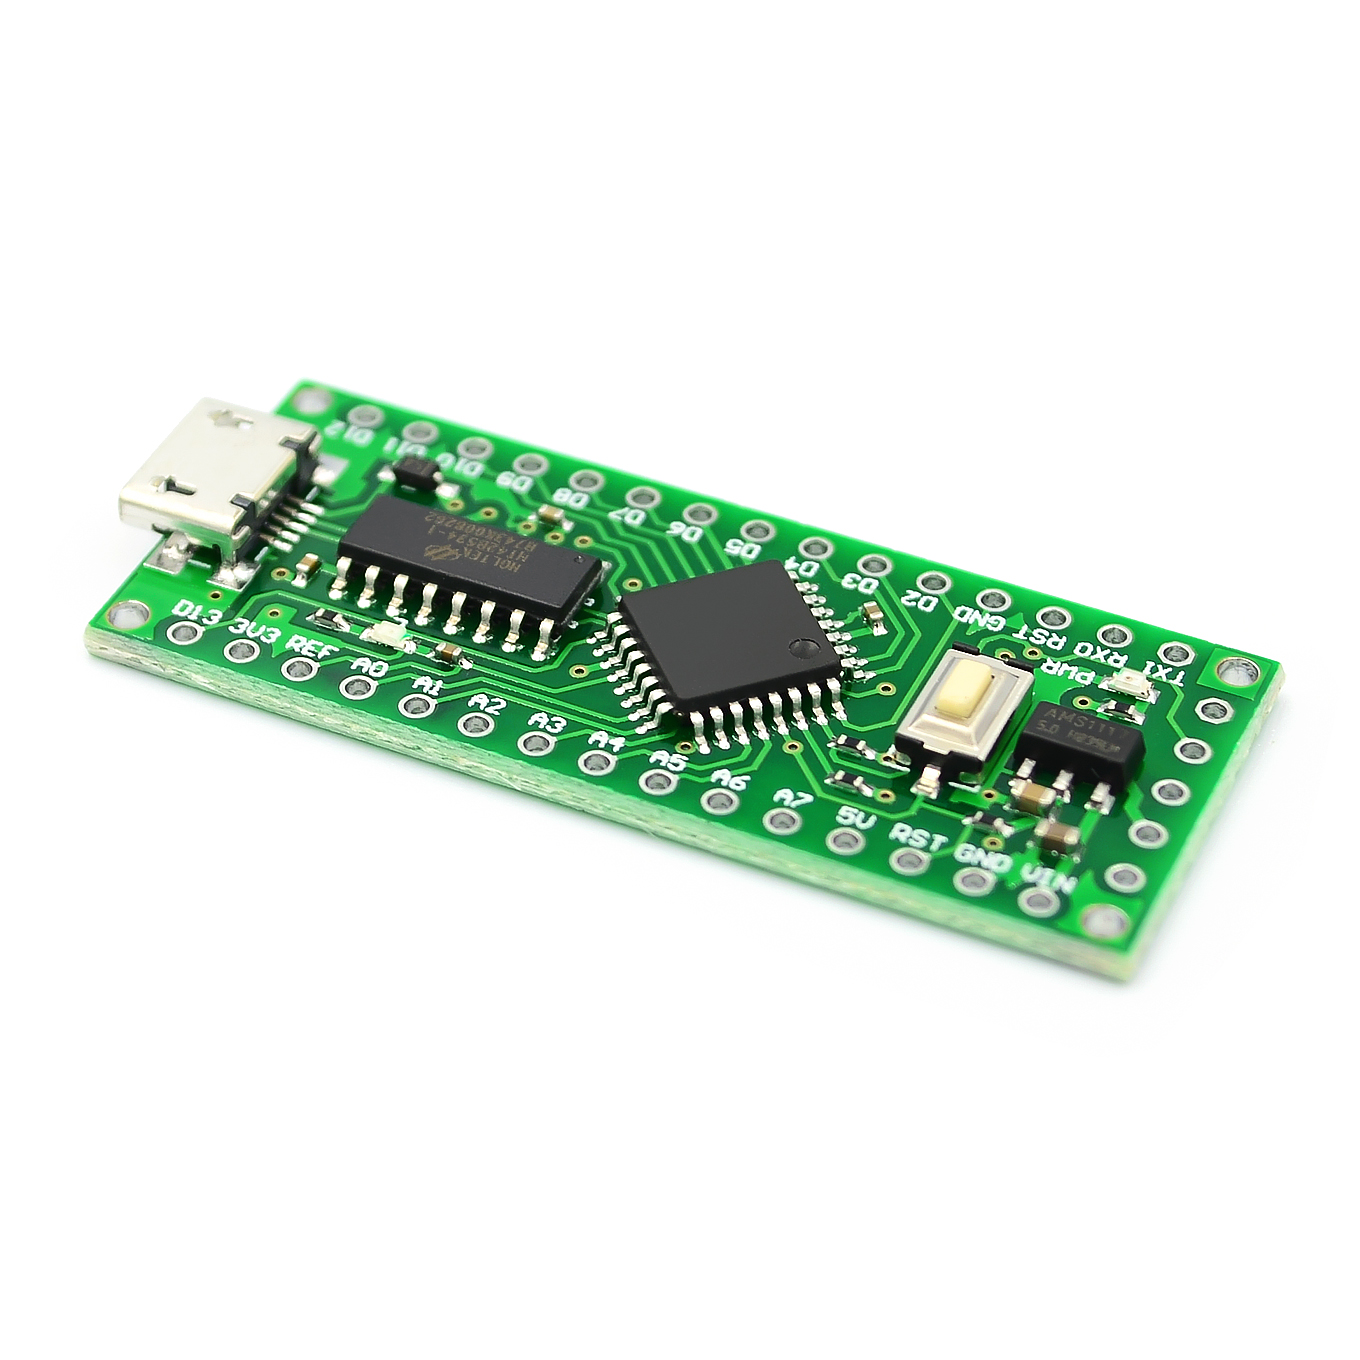 lgt8f328p-lqfp32-minievb-alternative-font-b-arduino-b-font-nano-v30-atmeag328p-ht42b534-1-sop16-usb-driver-good-quality-and-cheap-price